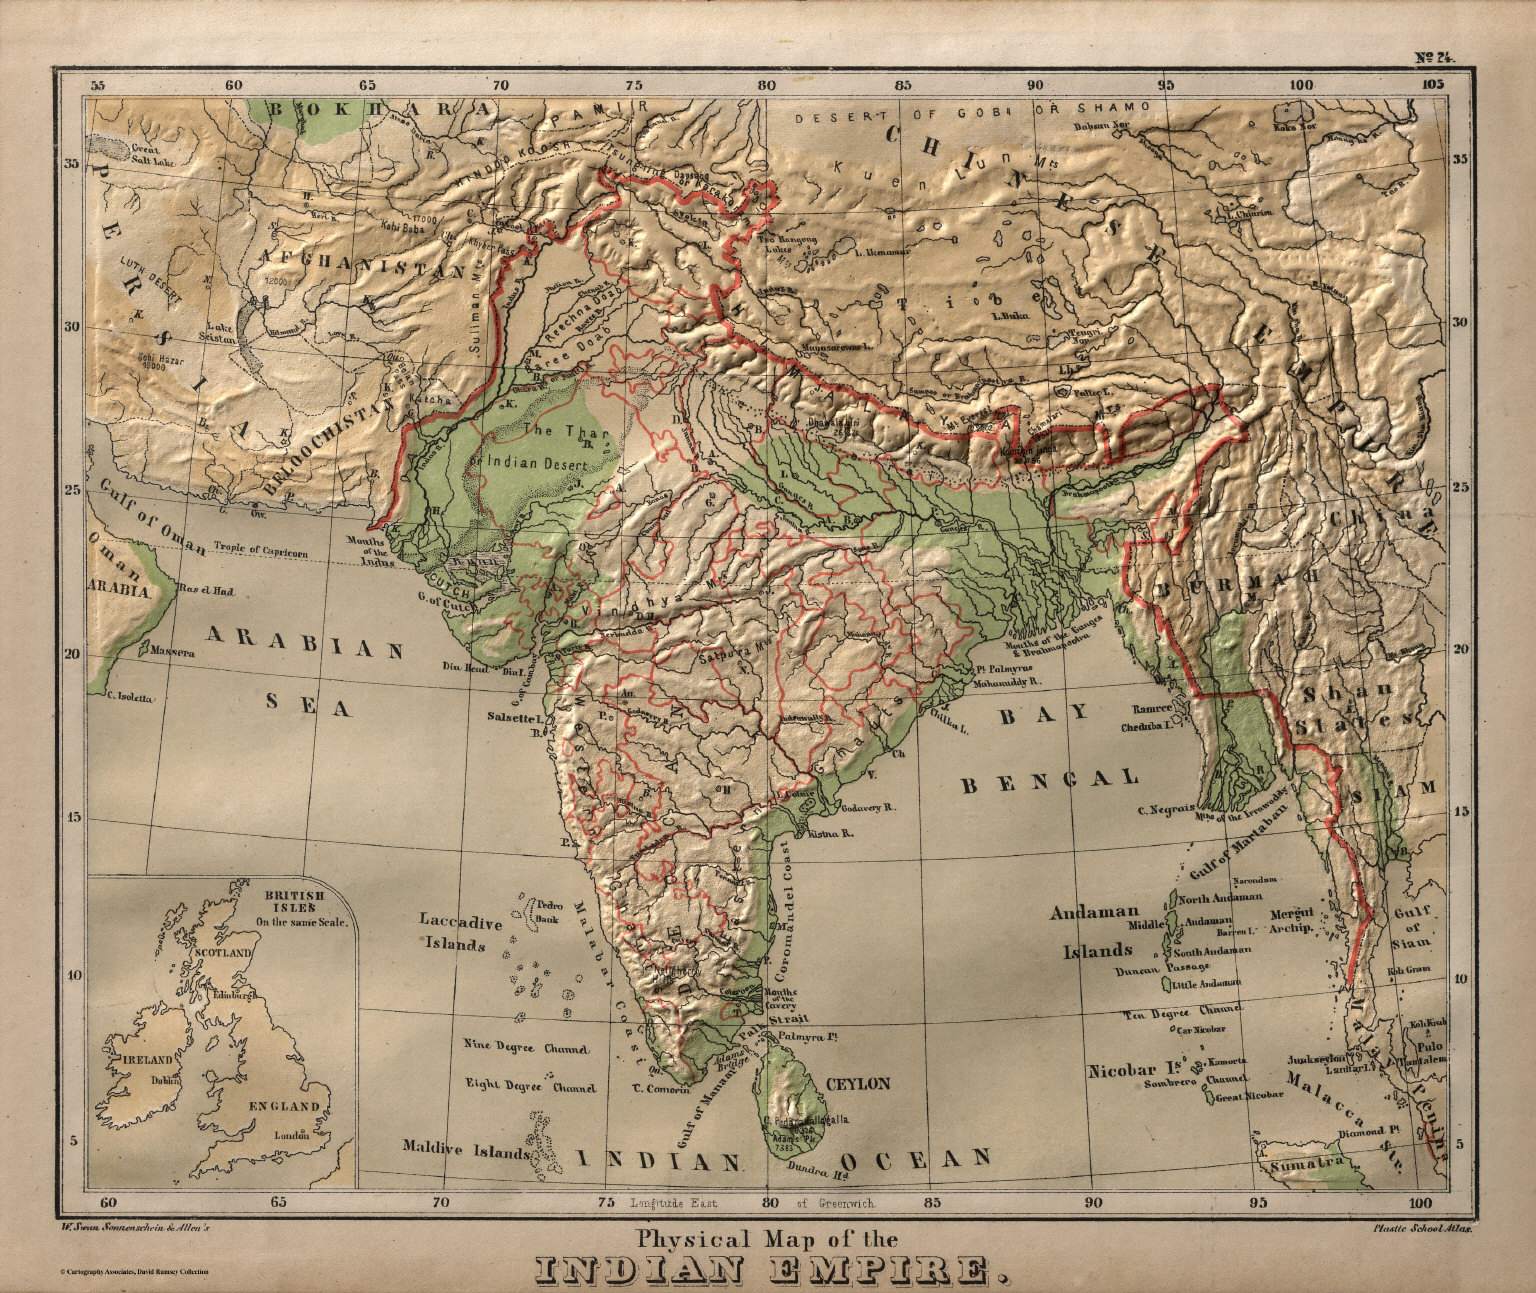 Physical Map of the Indian Empire David Rumsey Historical Map